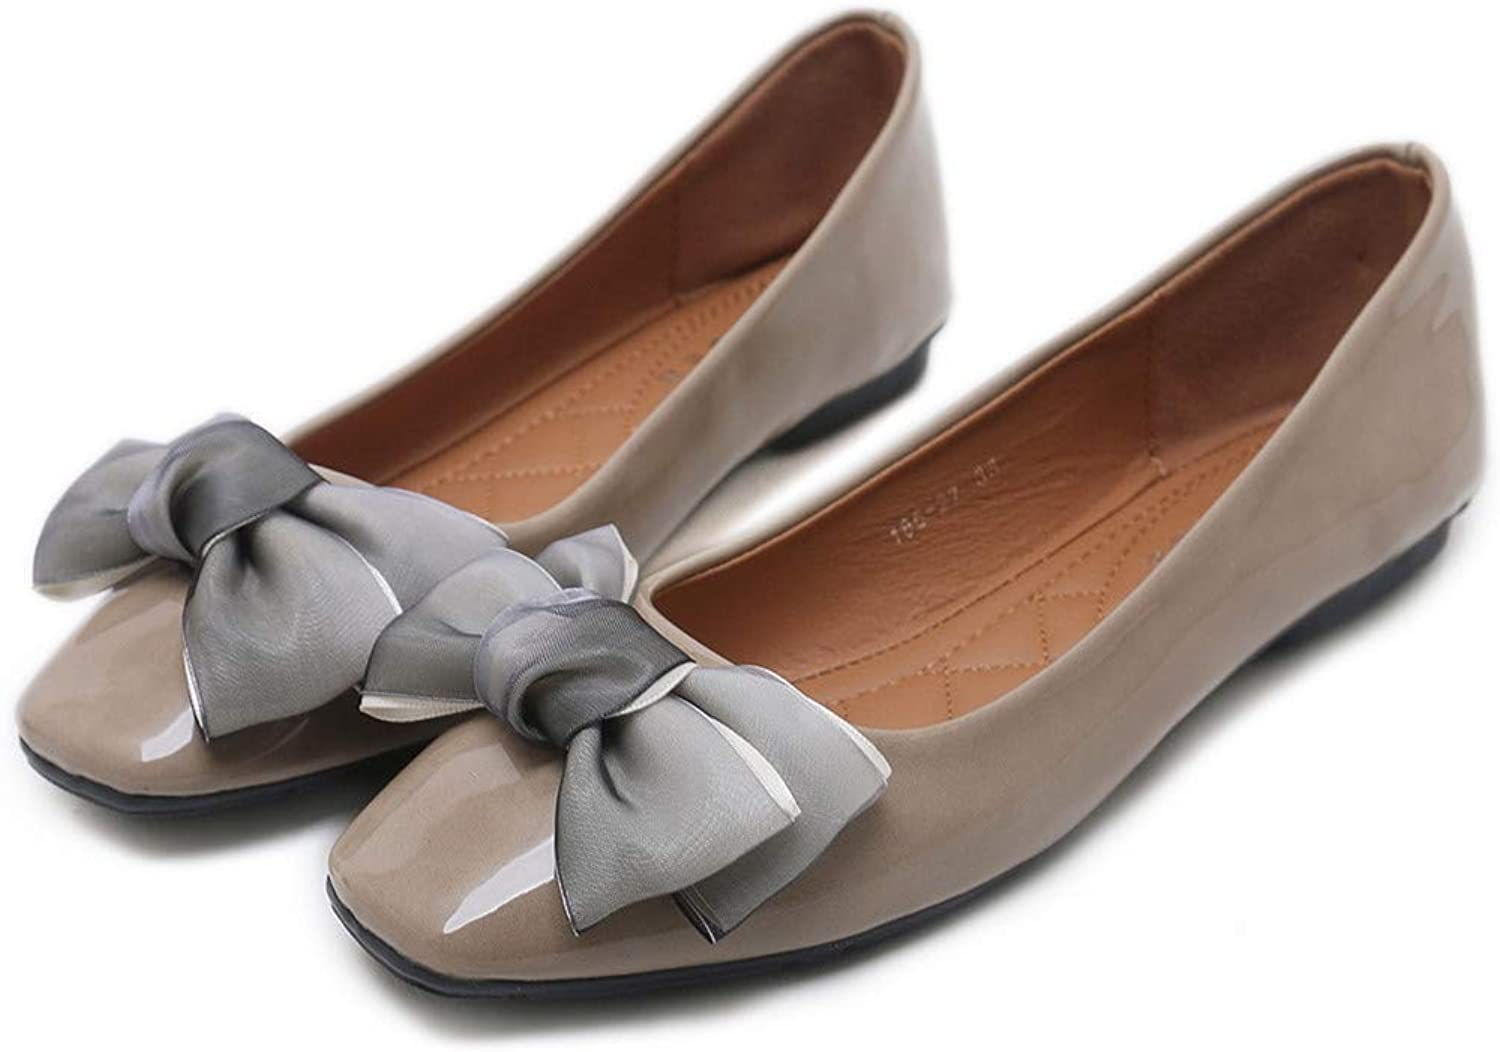 Kyle Walsh Pa Women Elegant Flats shoes Patent Leather Bow Knot Ladies Soft Trendy Moccasins